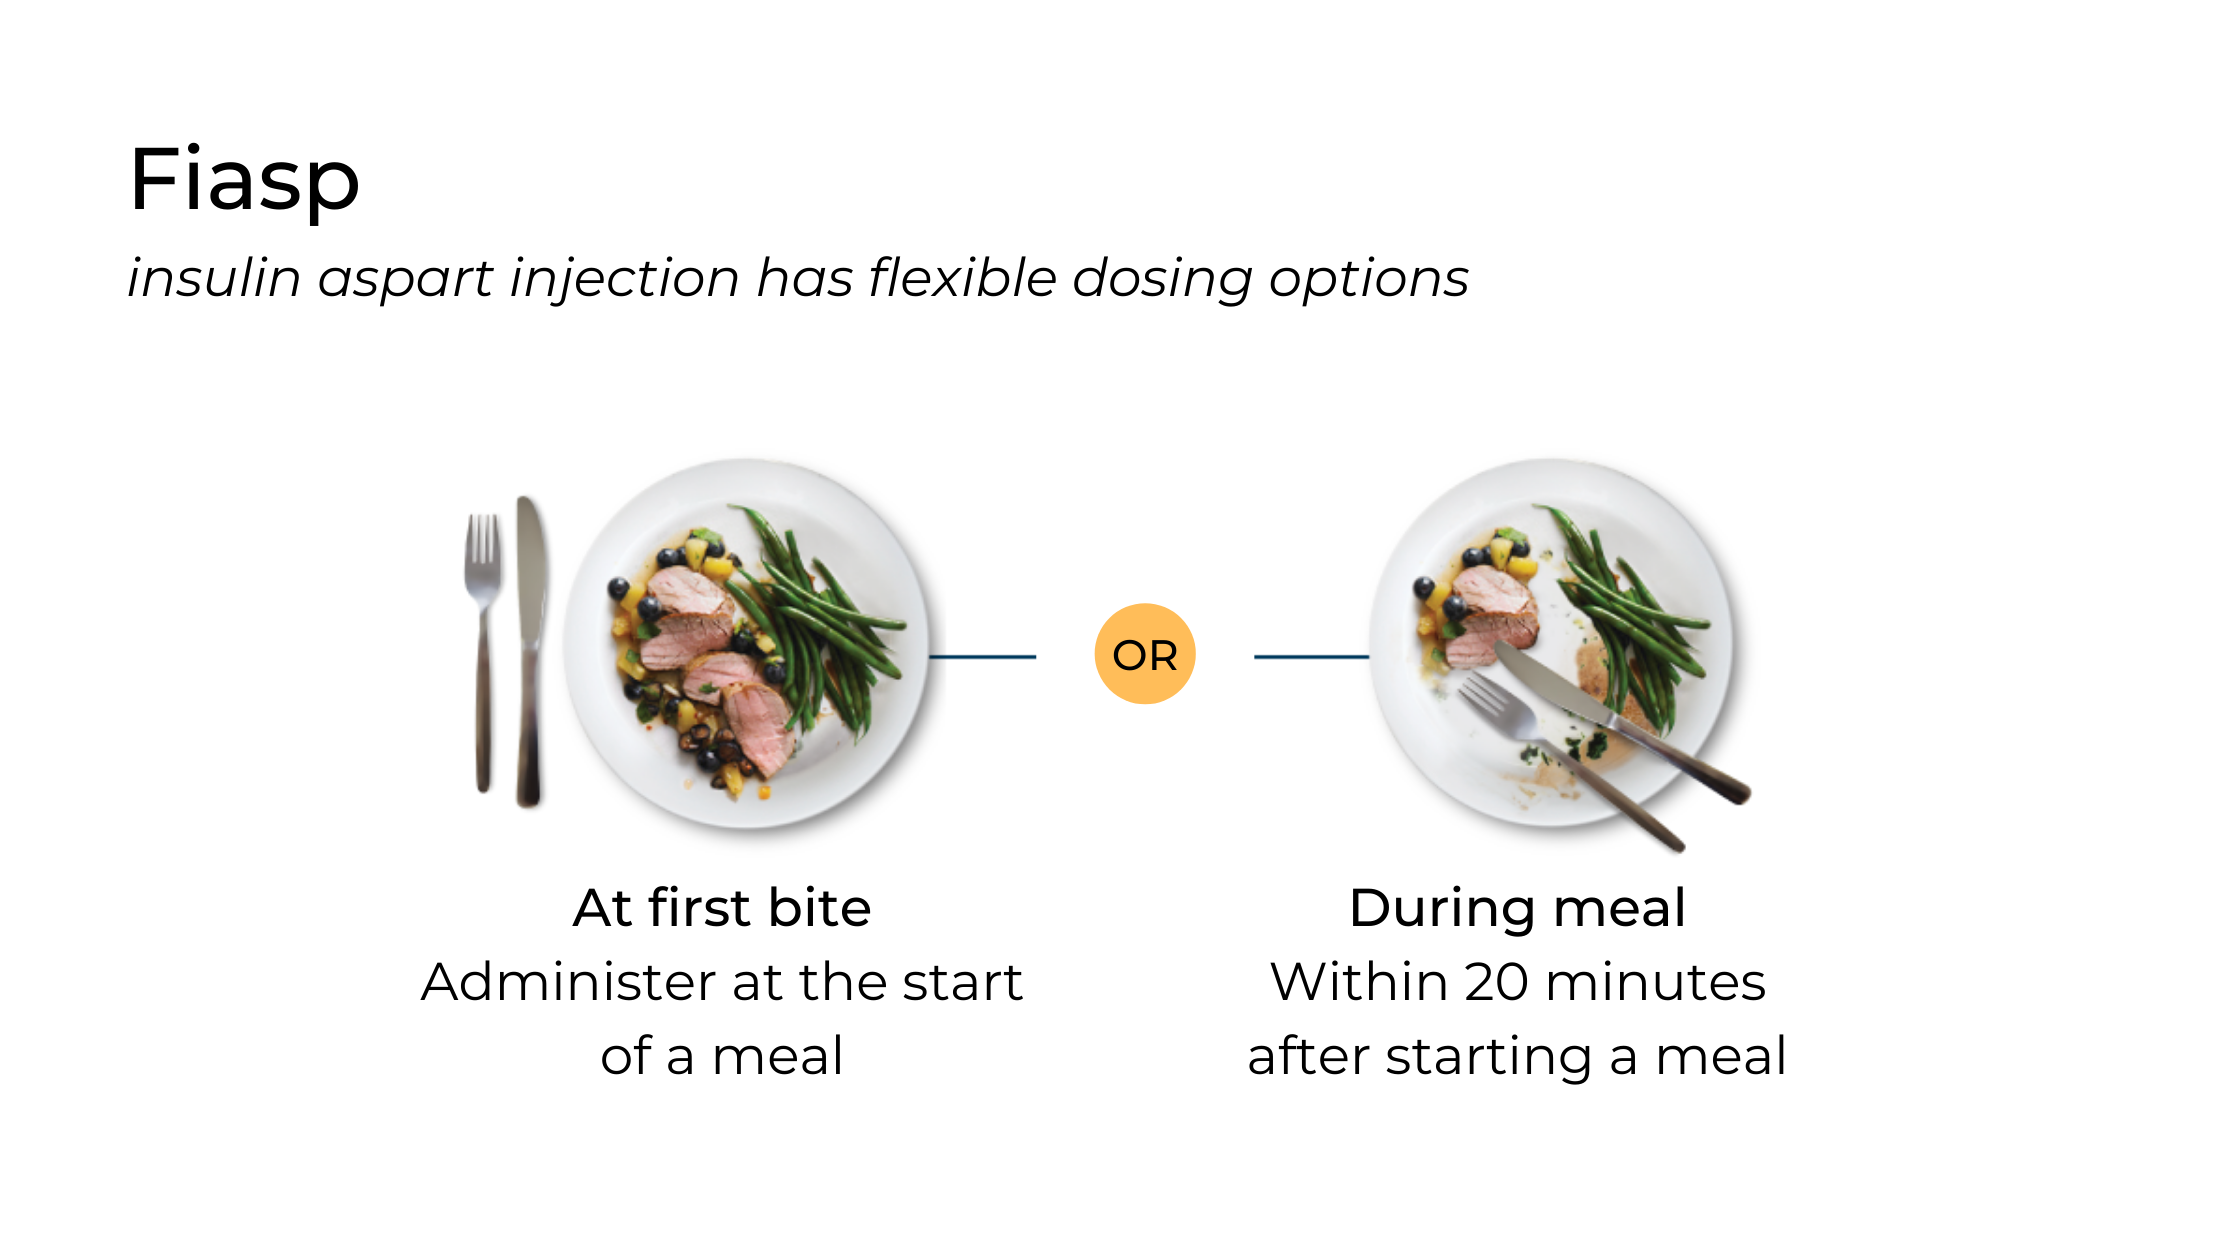 Fiasp has flexible dosing options where you can take it at the start of your meal or within 20 minutes after starting your meal